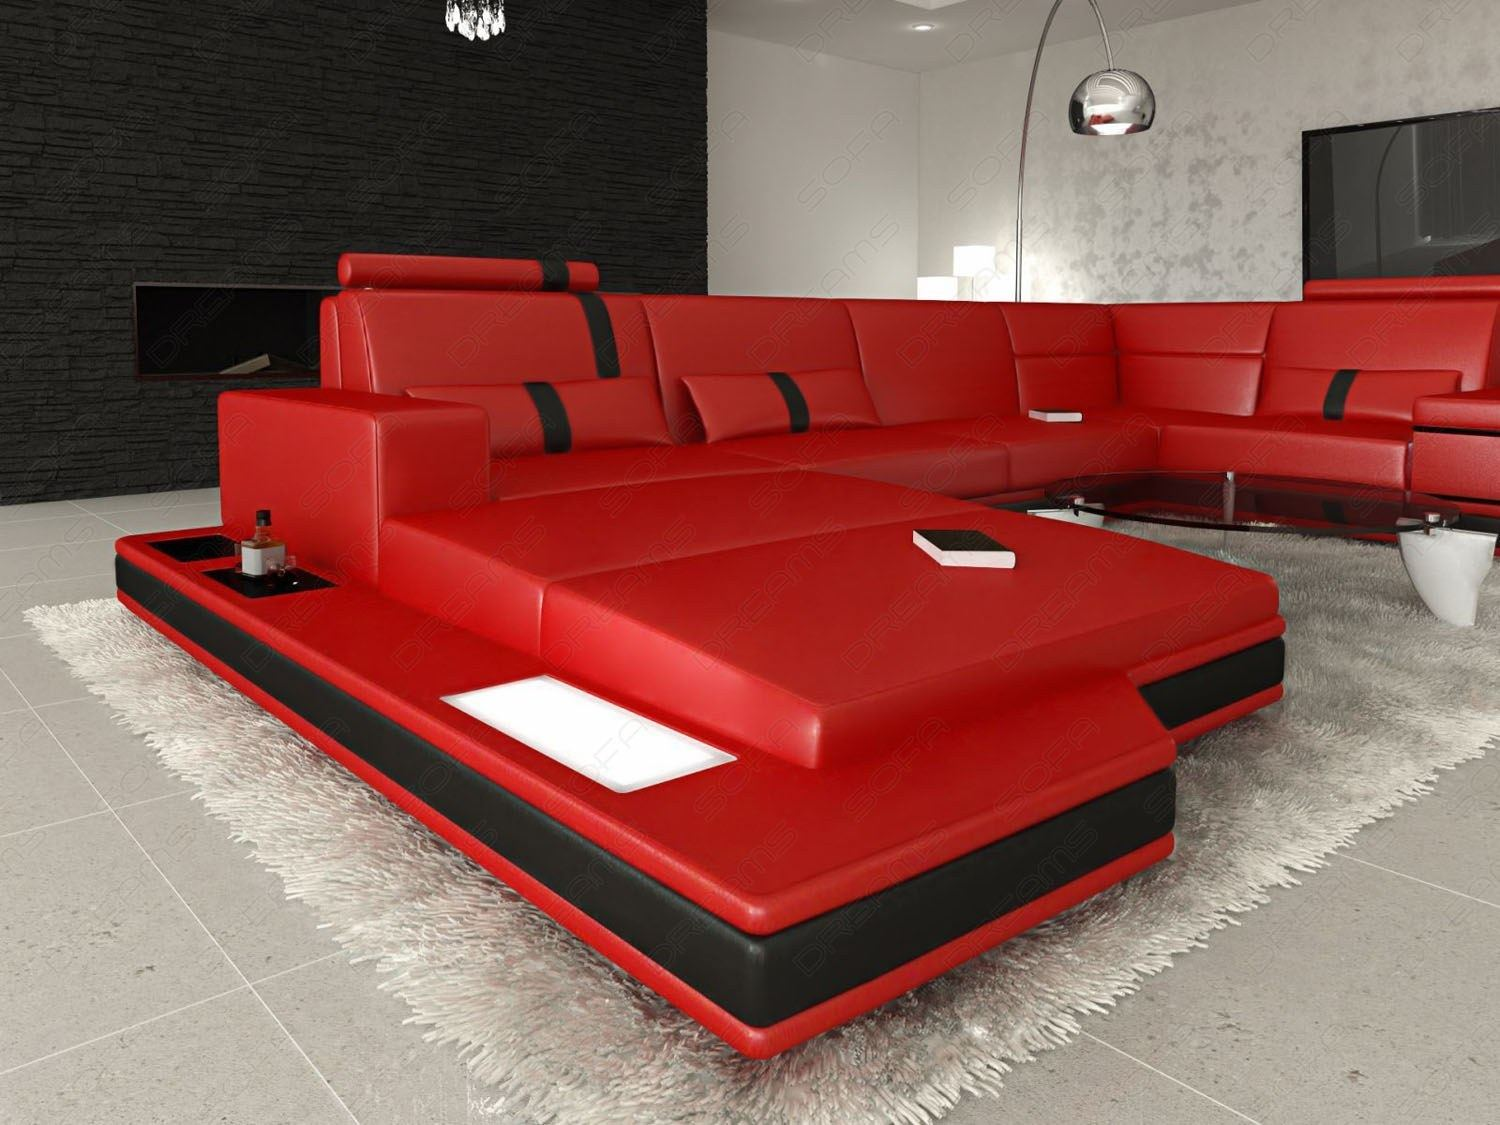 ledersofa messana designersofa mit beleuchtung rot couch garnitur ebay. Black Bedroom Furniture Sets. Home Design Ideas